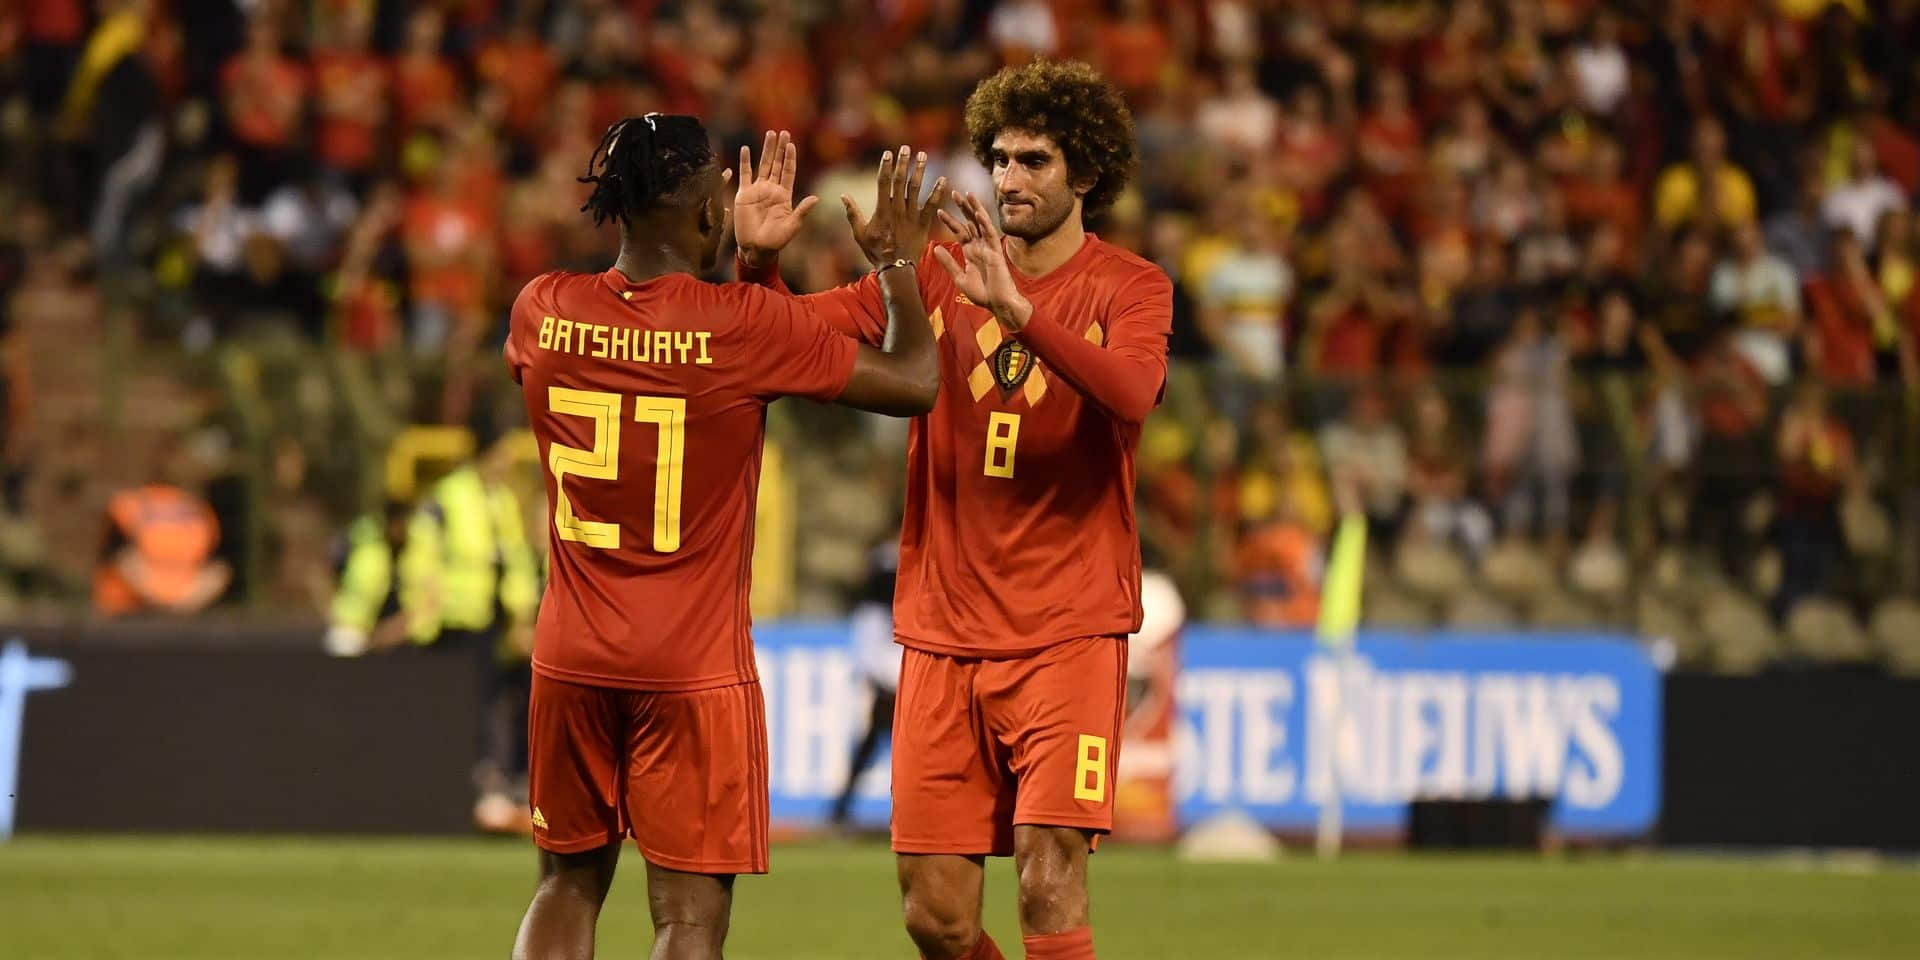 Belgium's Michy Batshuayi and Belgium's Marouane Fellaini celebrate after Fellaini scored the 3-0 goal during a friendly game between Belgium national team, The Red Devils and Egyptian national soccer team, Wednesday 06 June 2018, in Brussels. Both teams prepare the upcoming FIFA World Cup 2018 in Russia. BELGA PHOTO DIRK WAEM